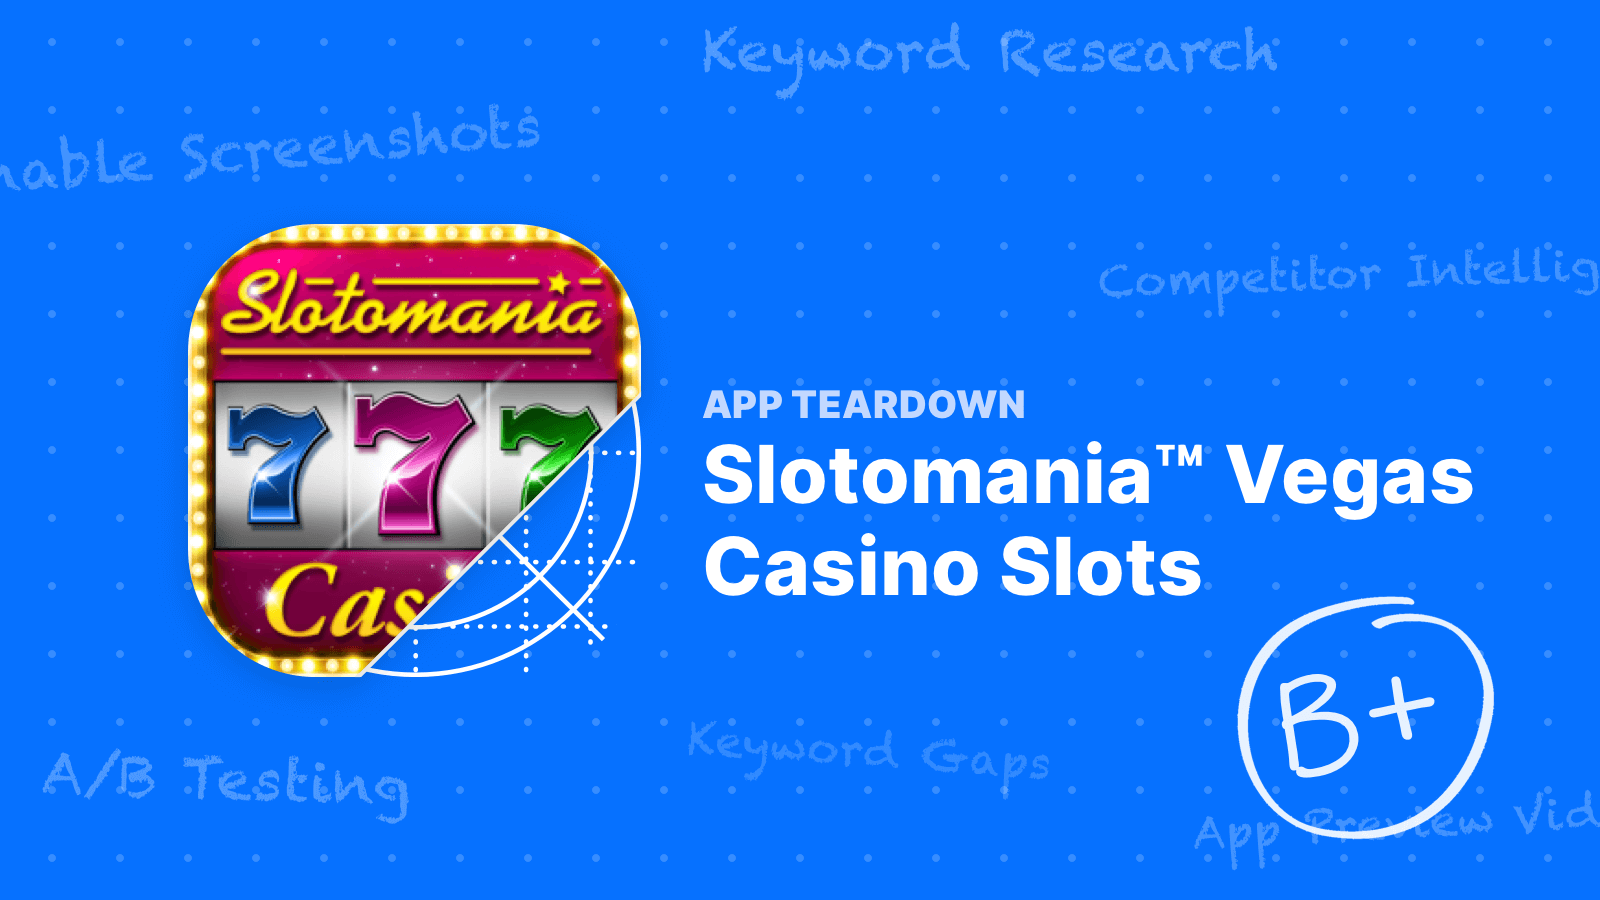 App Teardown: Slotomania™ Knows How to Monetize Every Single Download